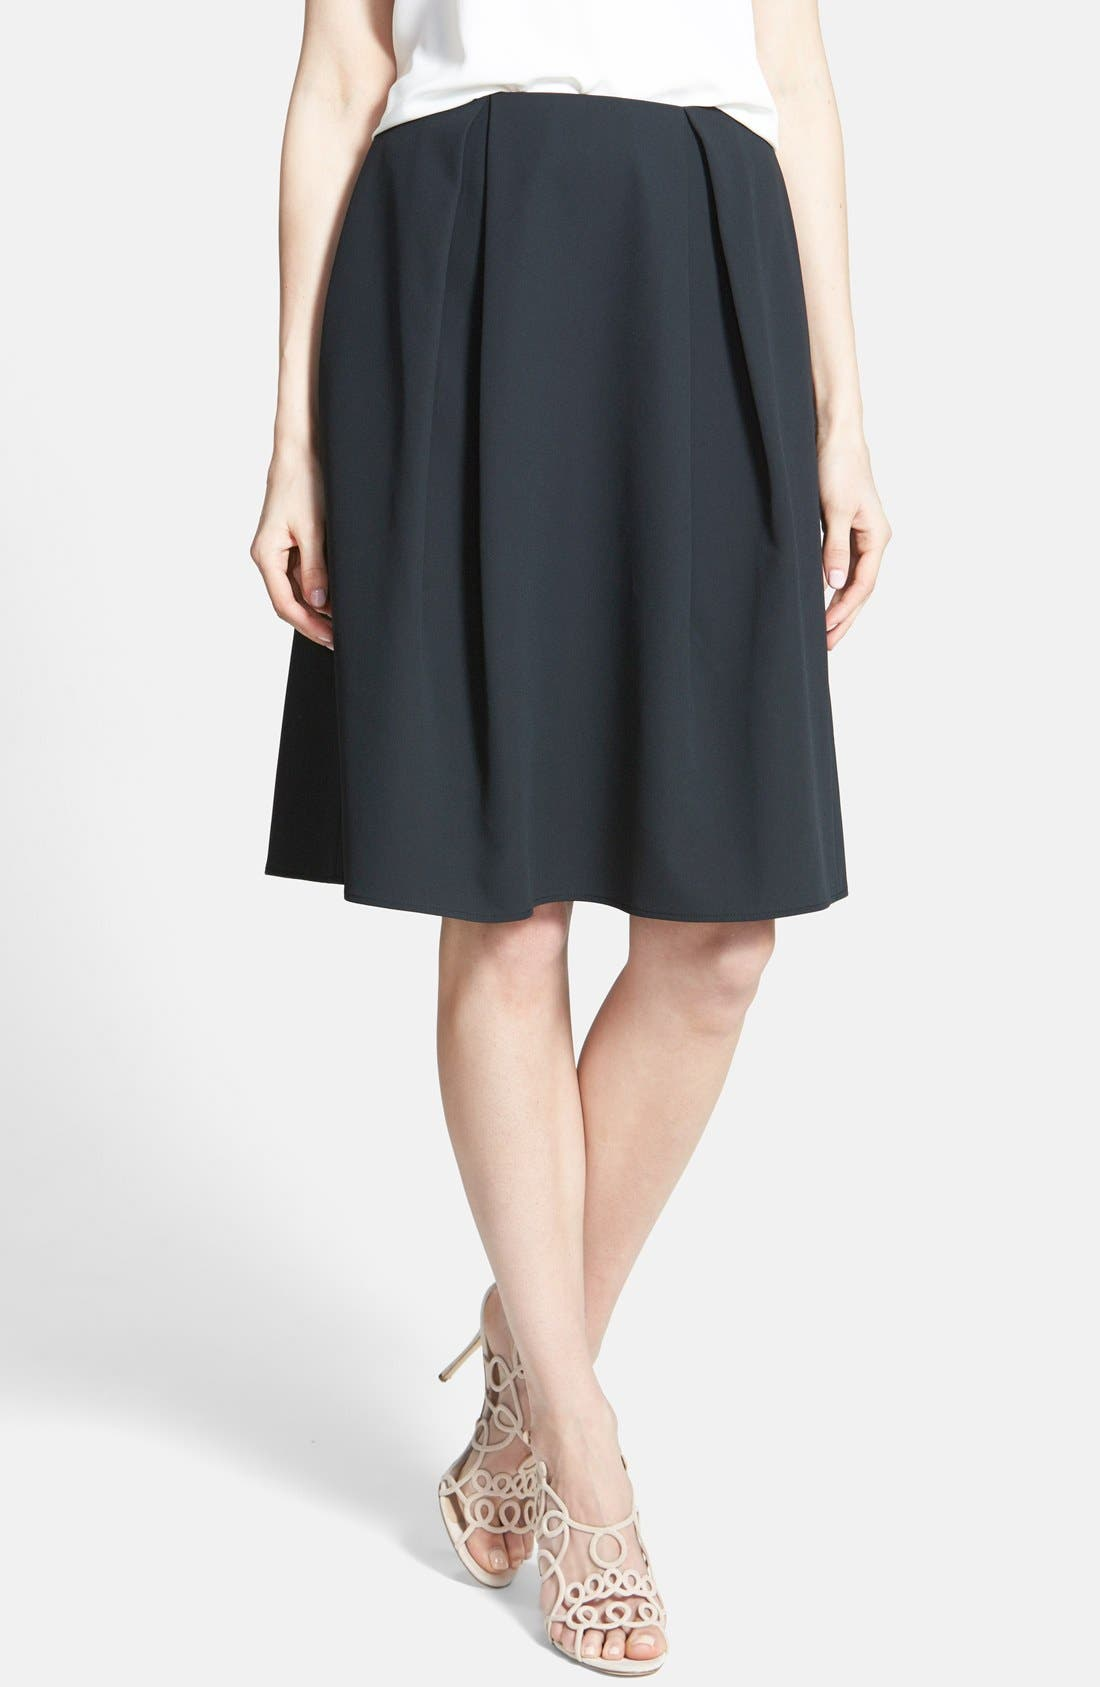 Alternate Image 1 Selected - Chelsea28 Pleated A-Line Skirt